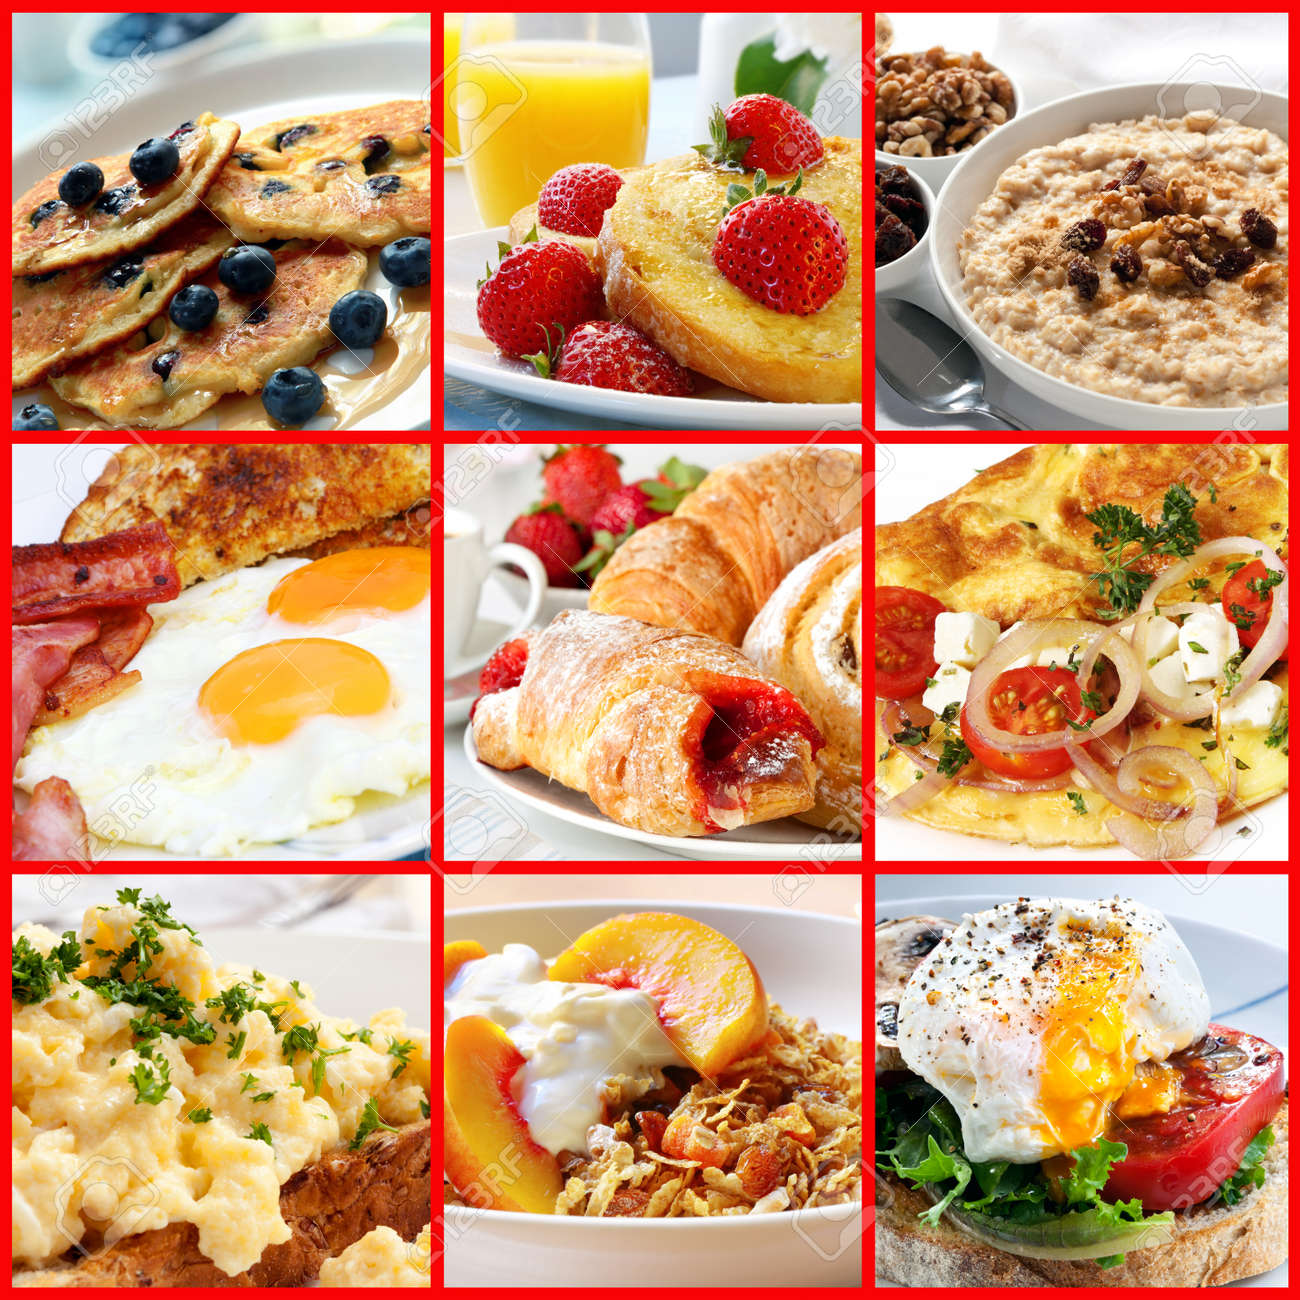 Collage of breakfast images.  Includes pancakes, french toast, oatmeal, bacon and eggs, continental, omelet, muesli, and poached egg. Stock Photo - 23580035